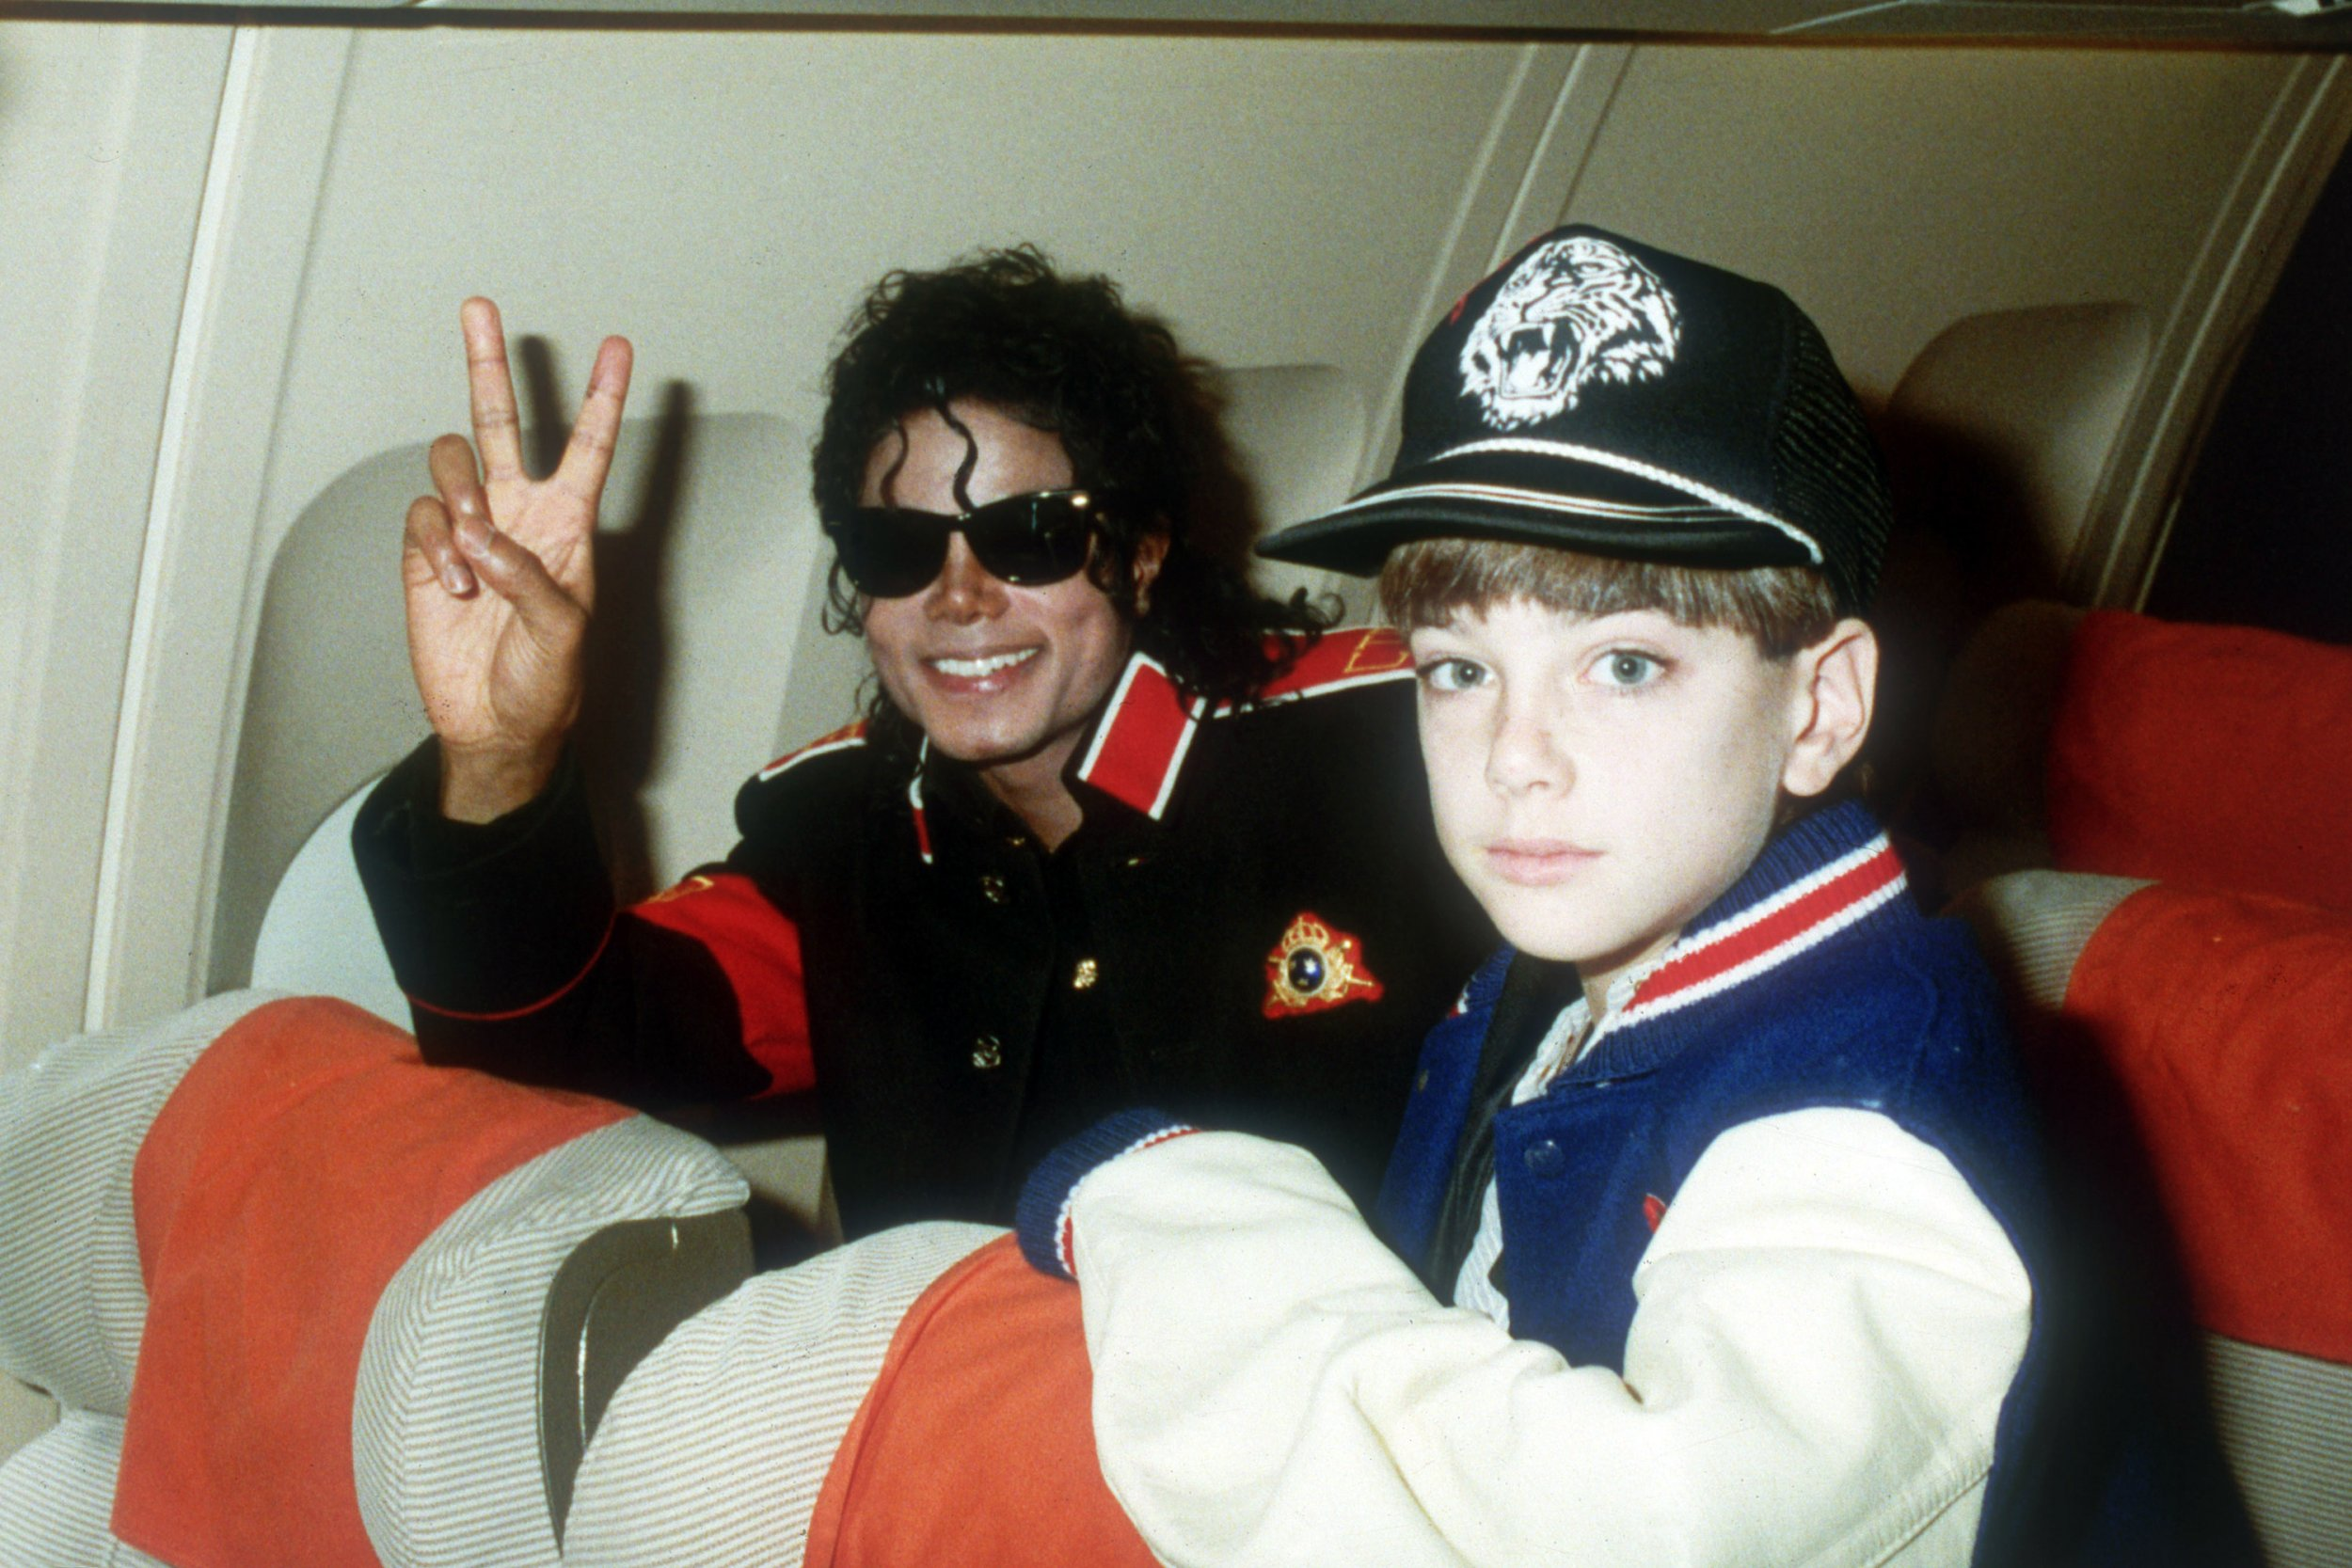 michael-jackson-jimmy-safechuck-leaving-neverland-documentary